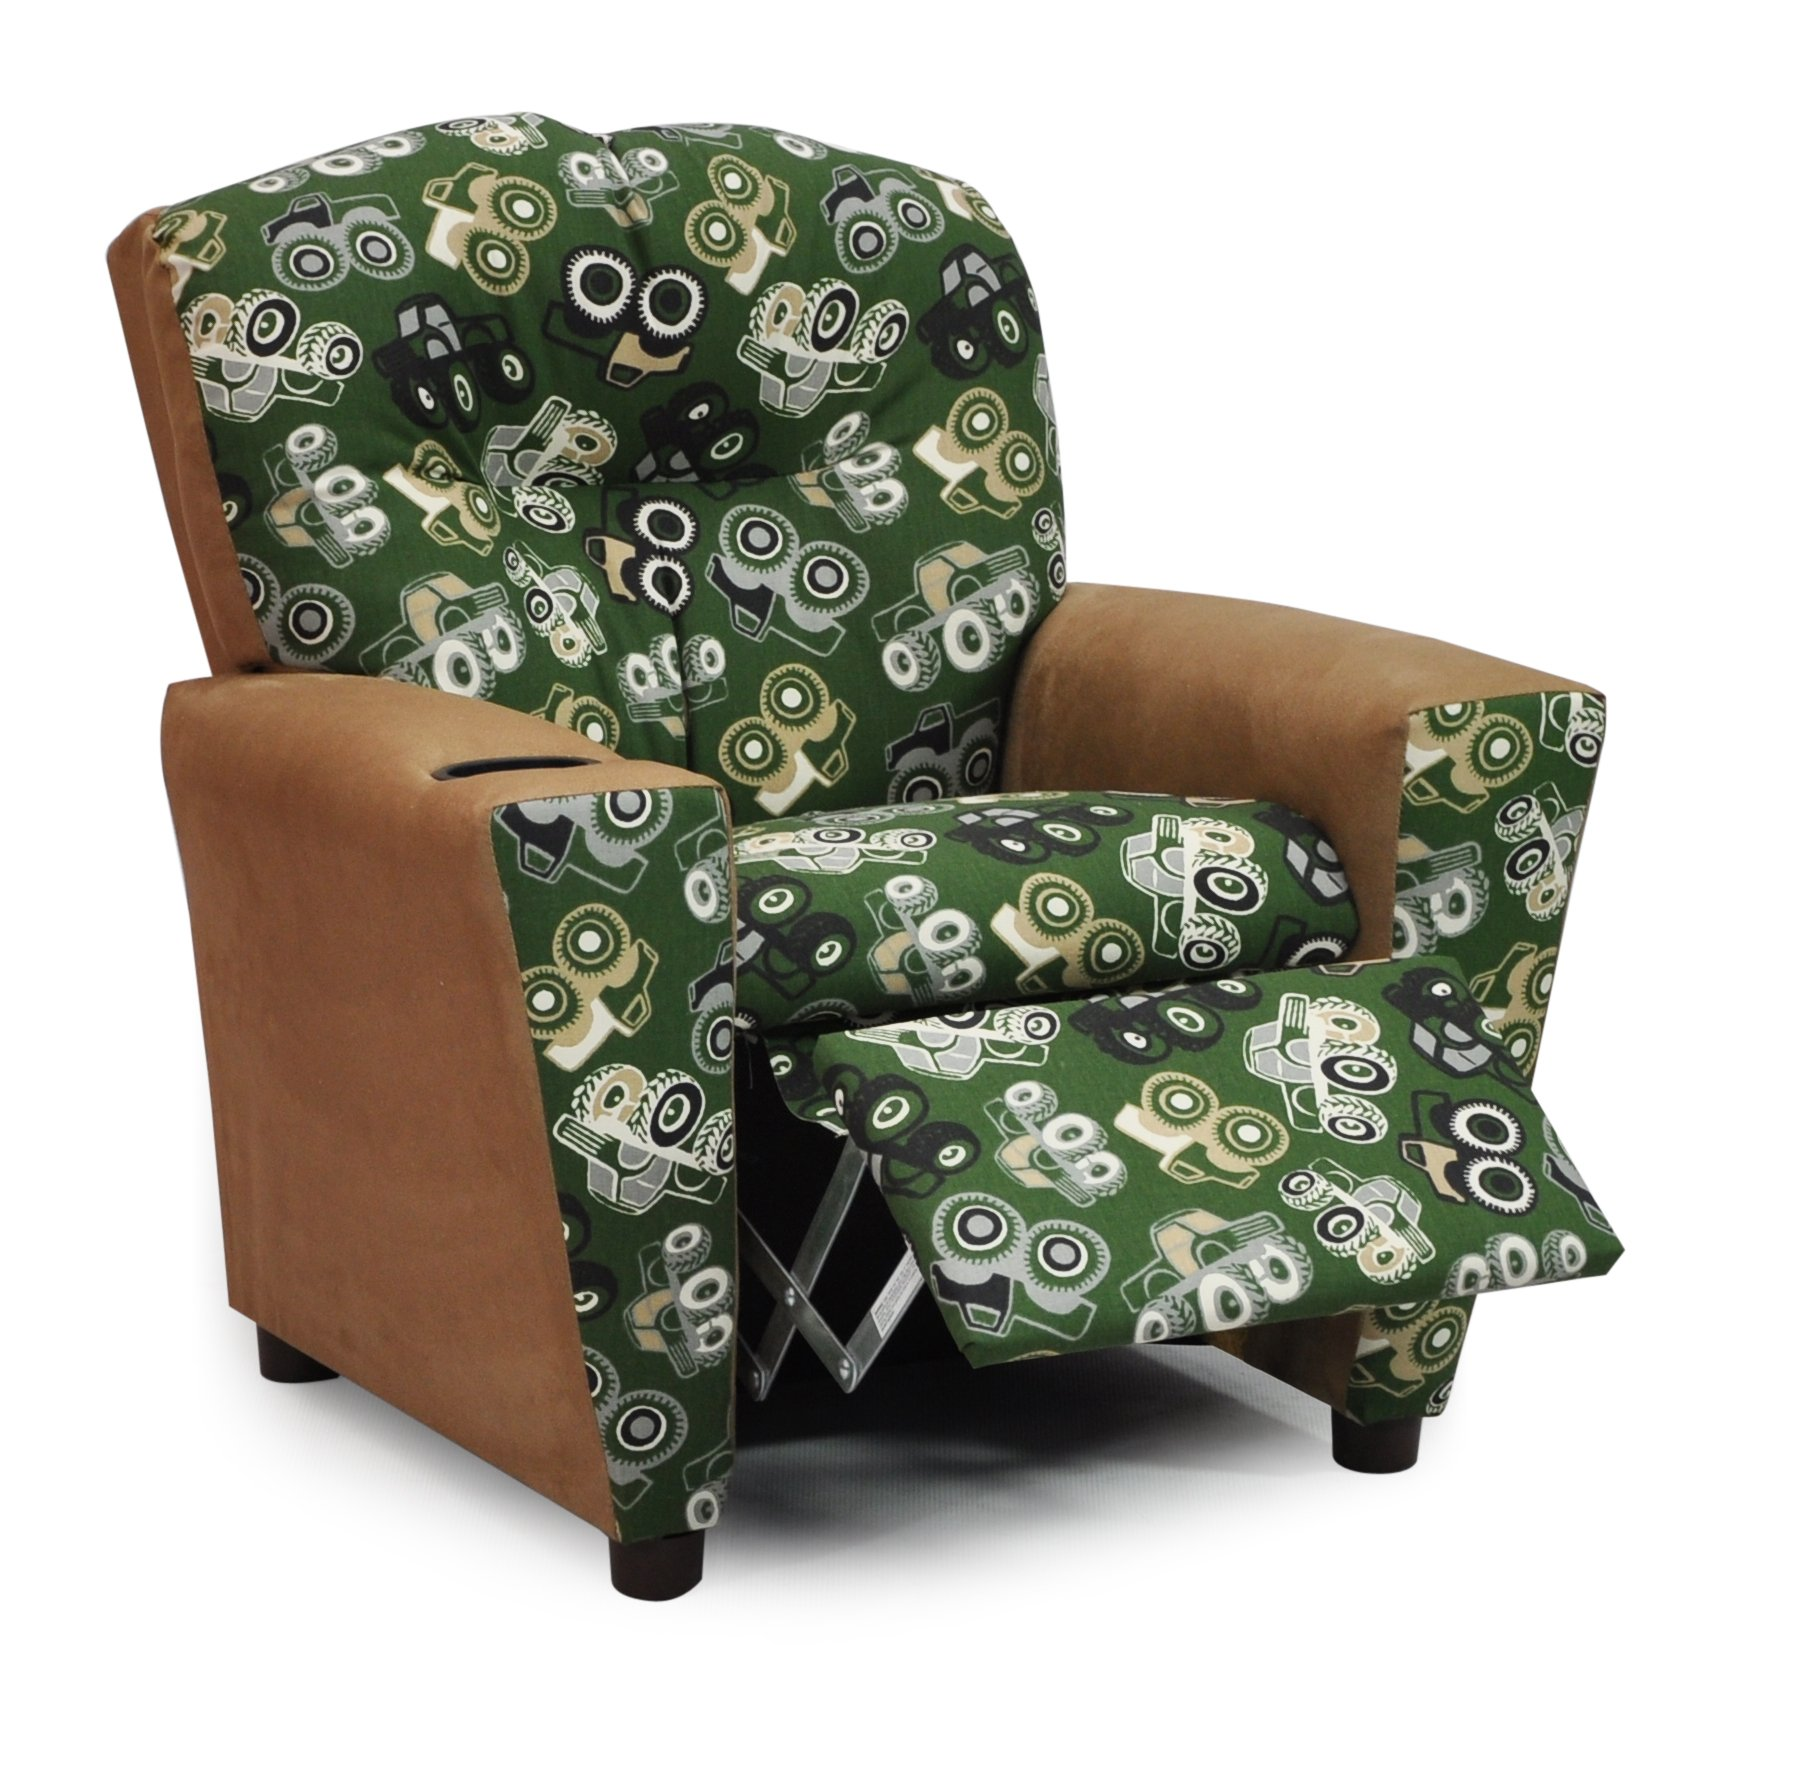 Childs Upholstered Reclining Armchair with Cup Holders - Kids Favorite Recliner Chair for Children - Choose from 2 Fun Truck Fabric Choices - Easy Care